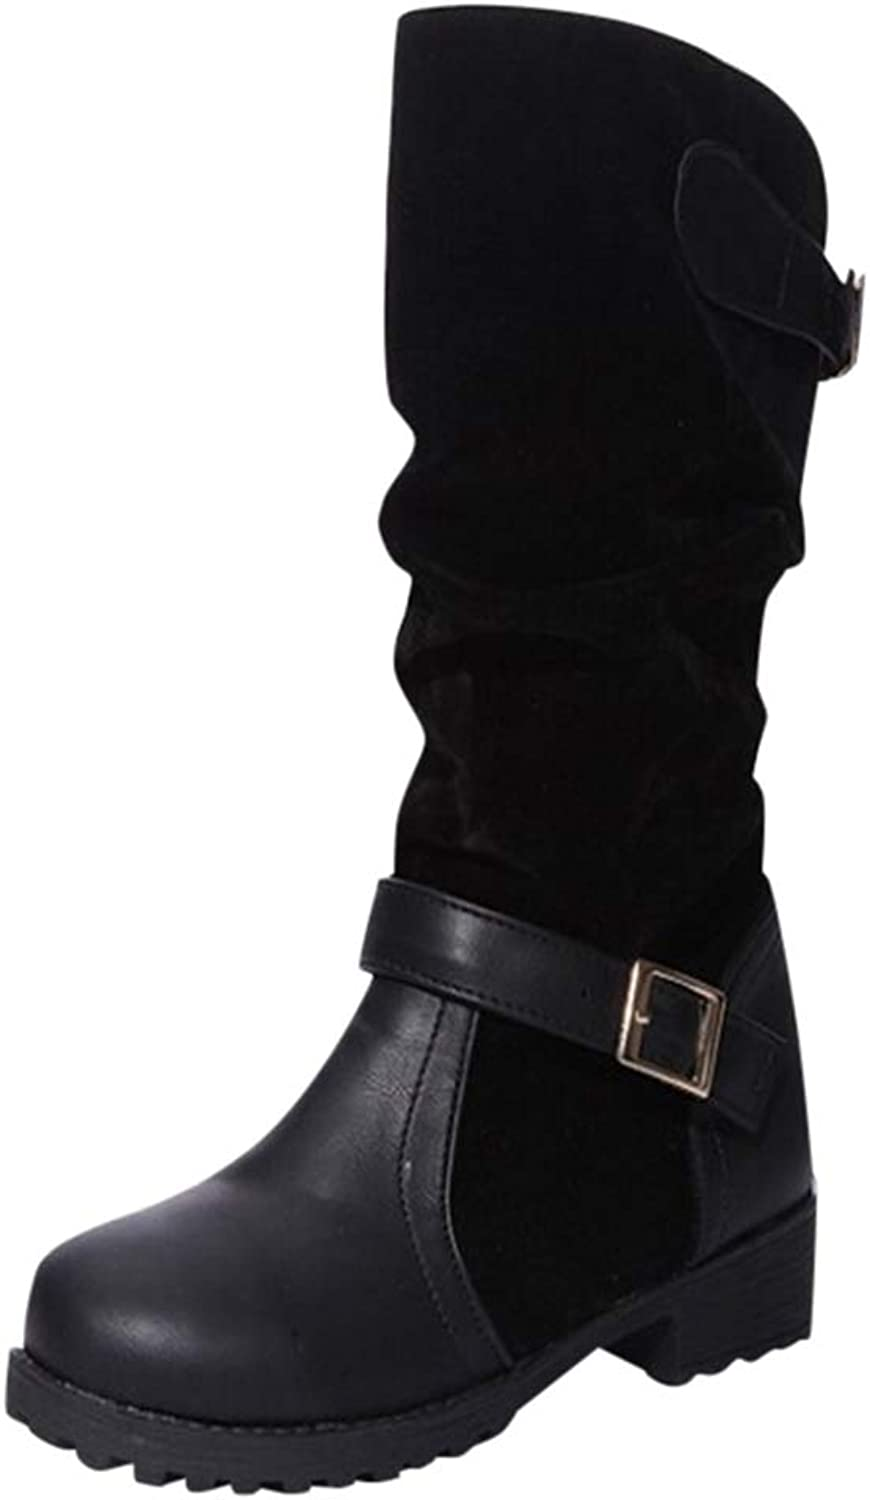 Hoxekle Woman Mid Calf Boots Buckle Slip On Low Square Heel Round Toe Pleated Female Antislip Winter Casual Boots